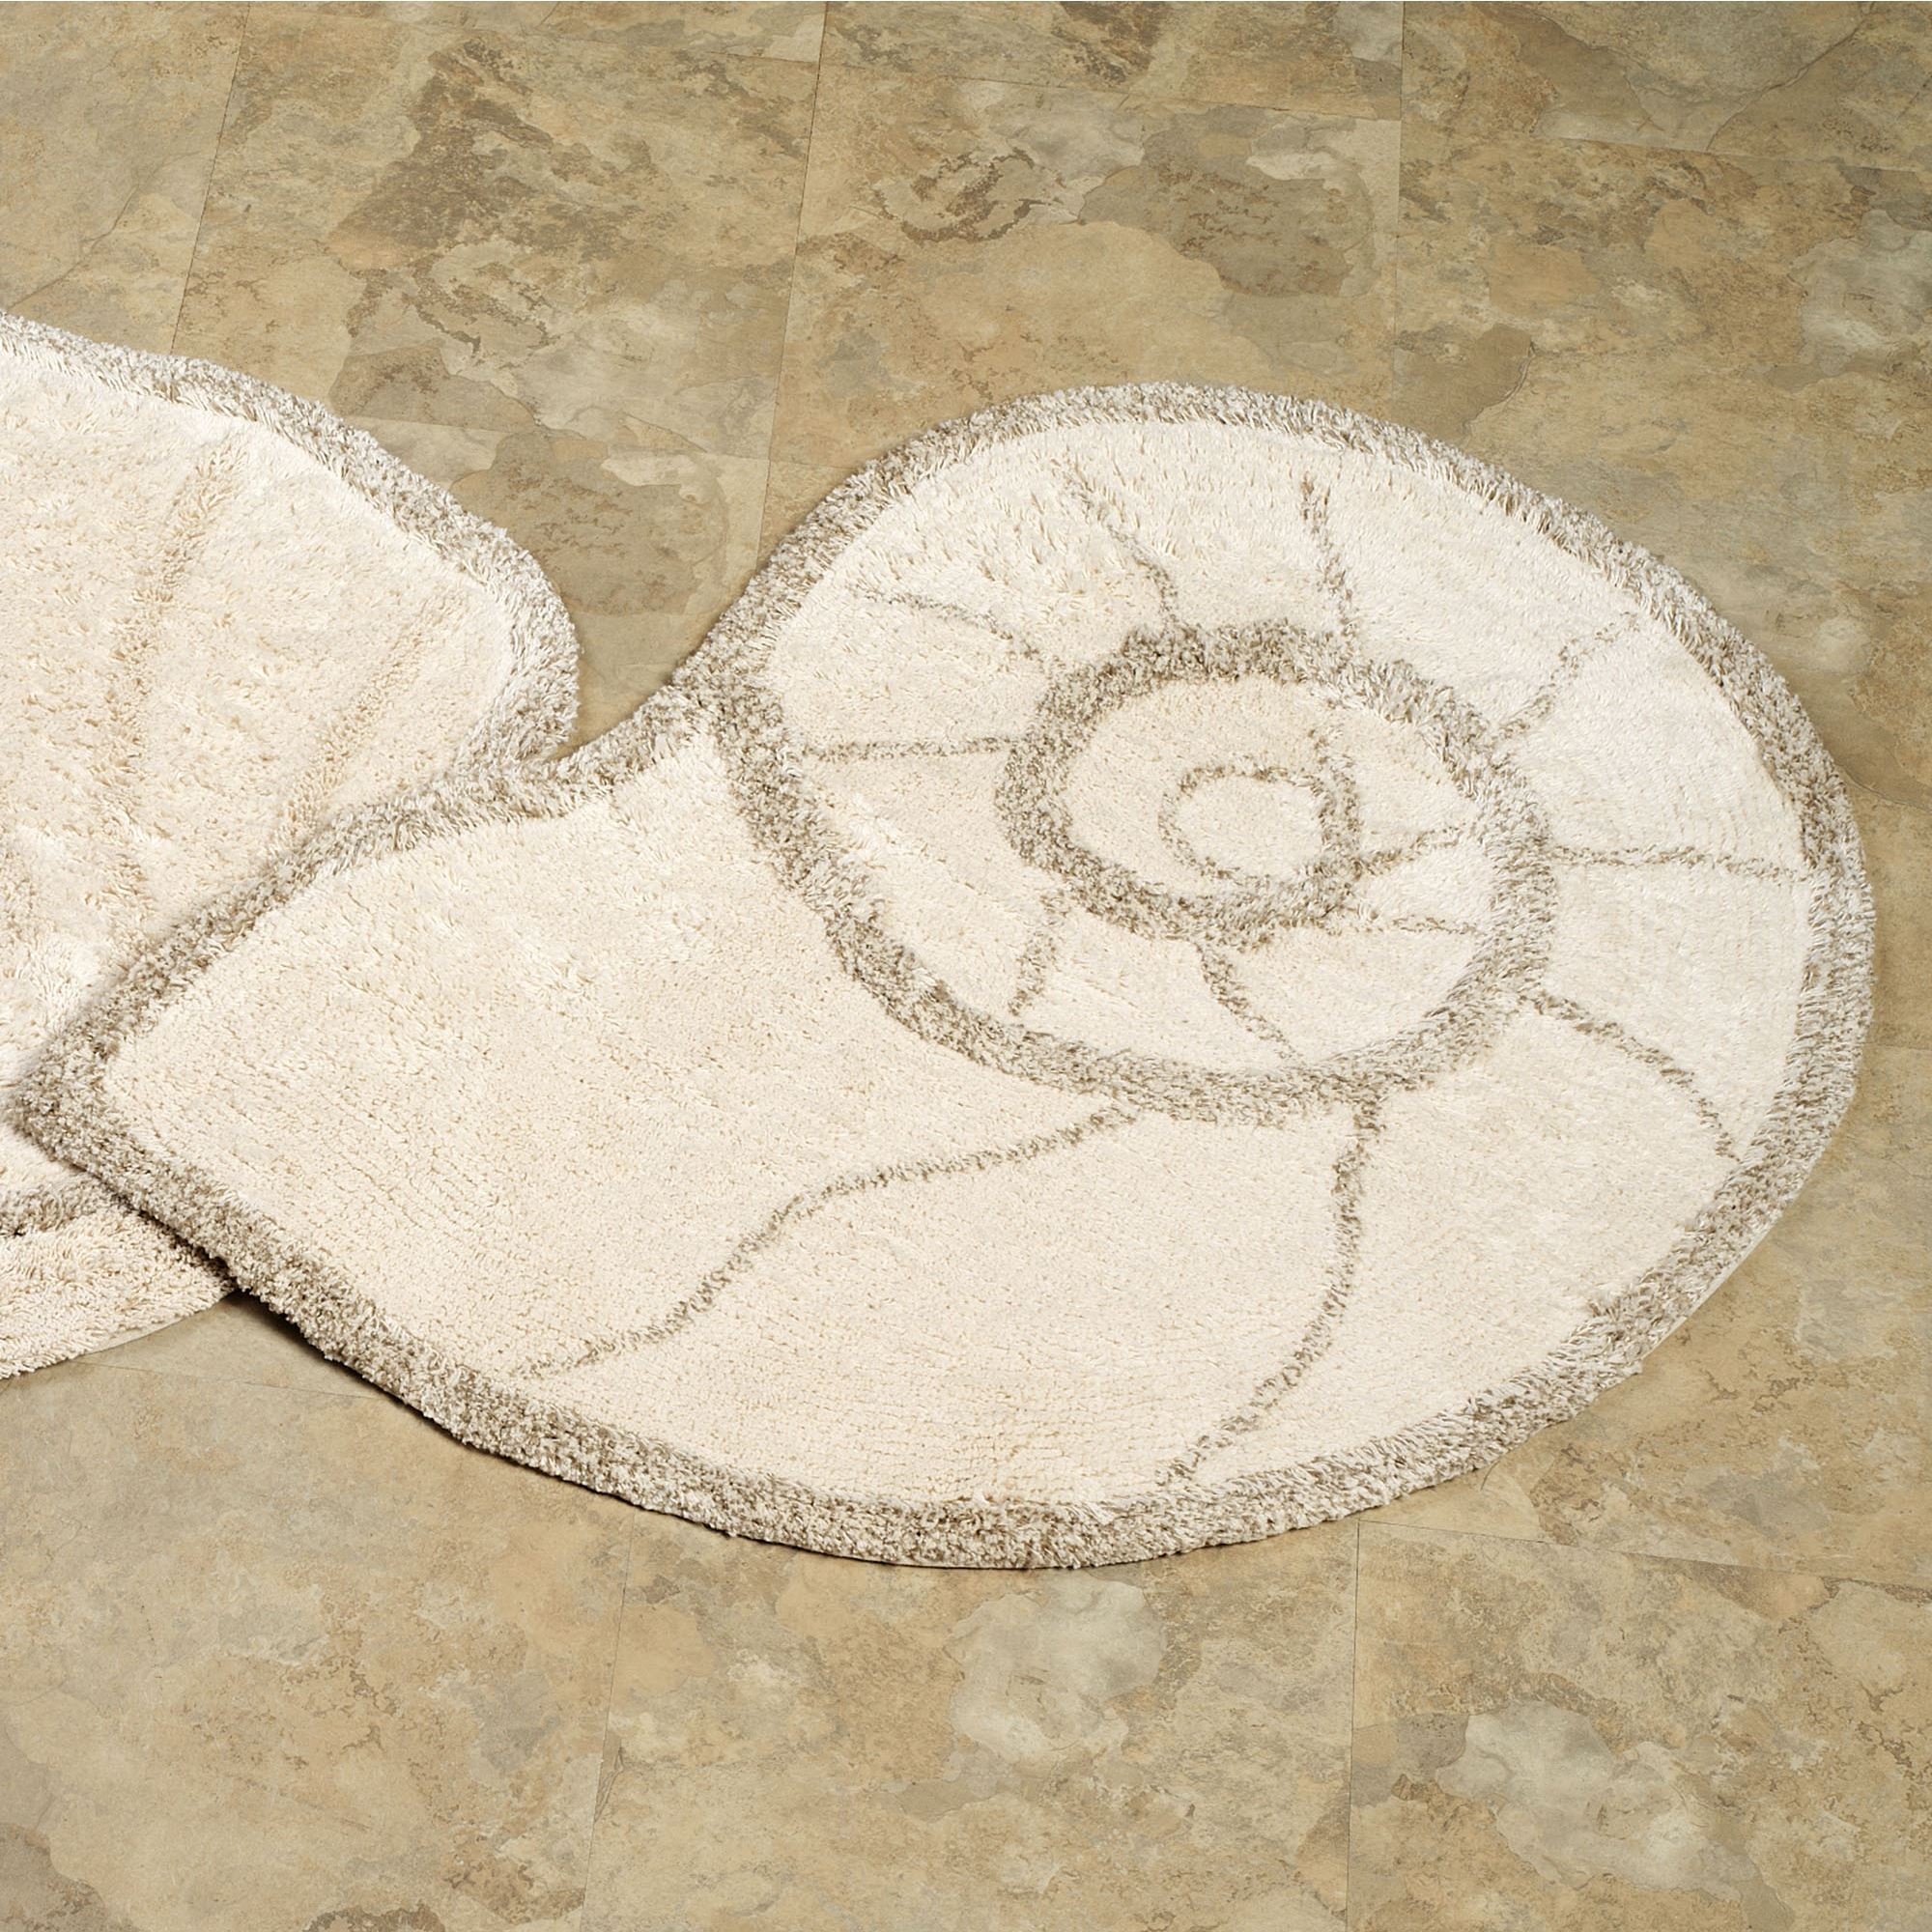 bath rugs, contour rugs, and toilet lid covers | touch of class